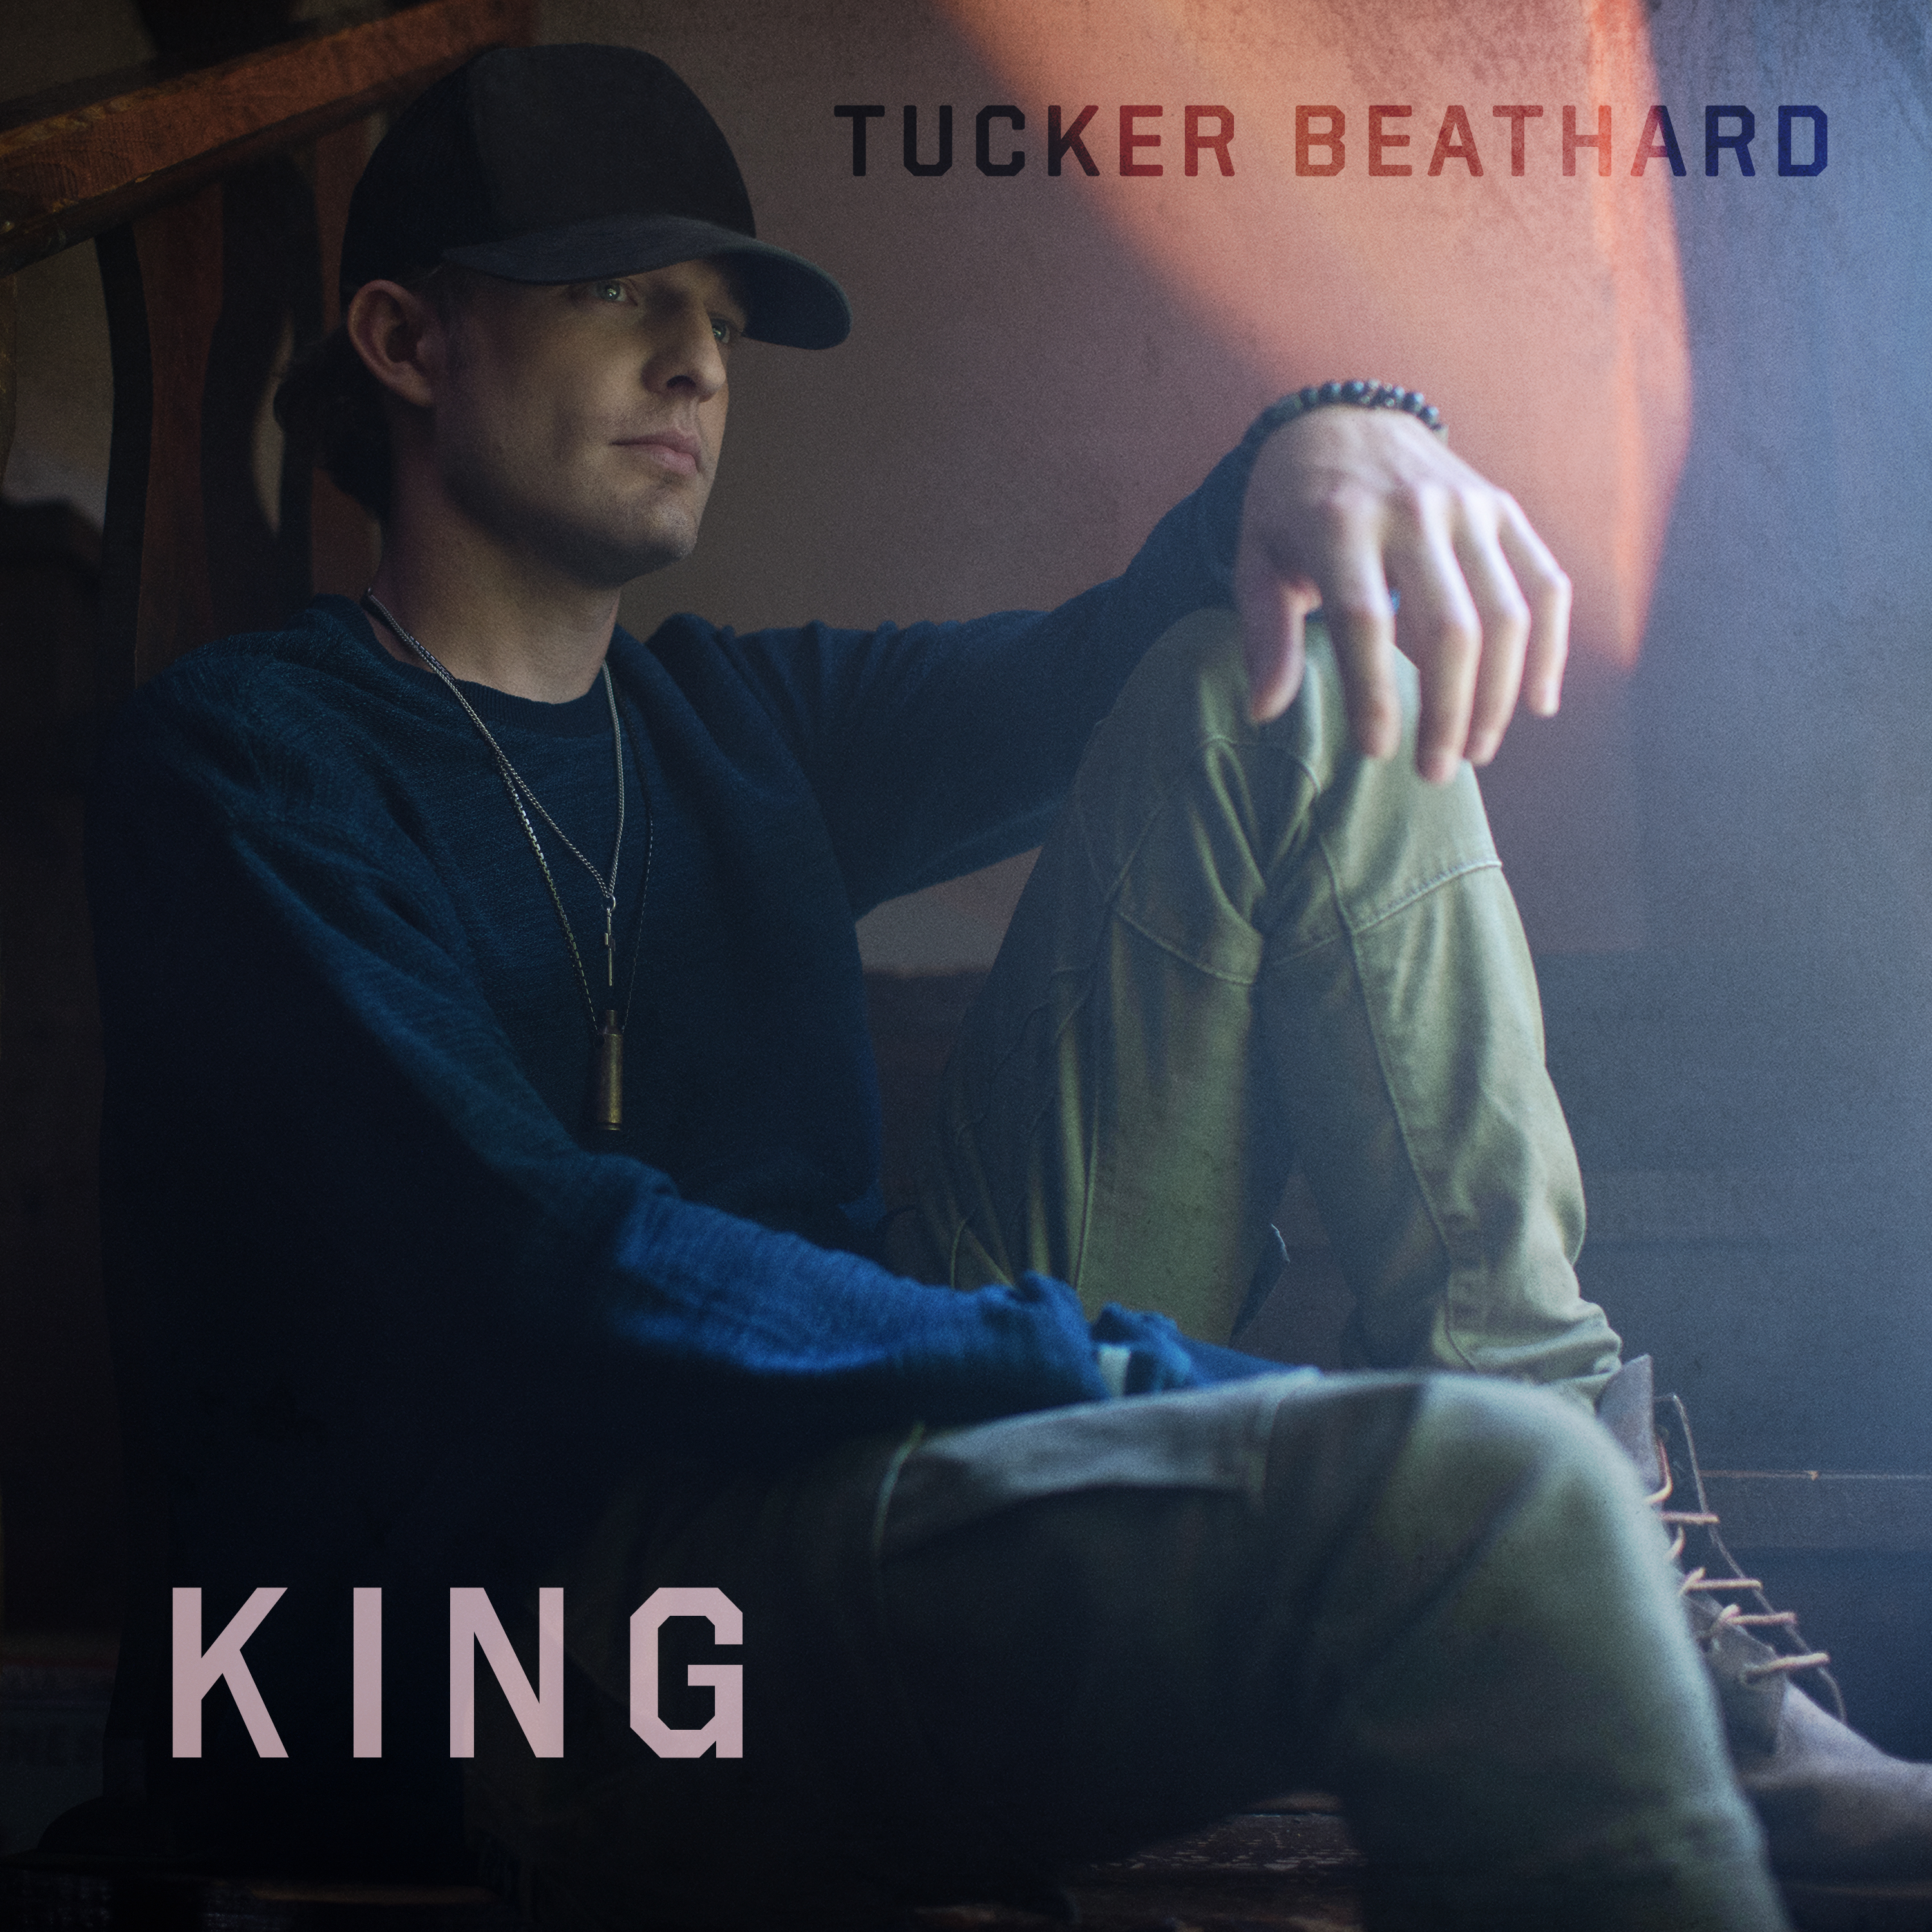 KING - Tucker Beathard